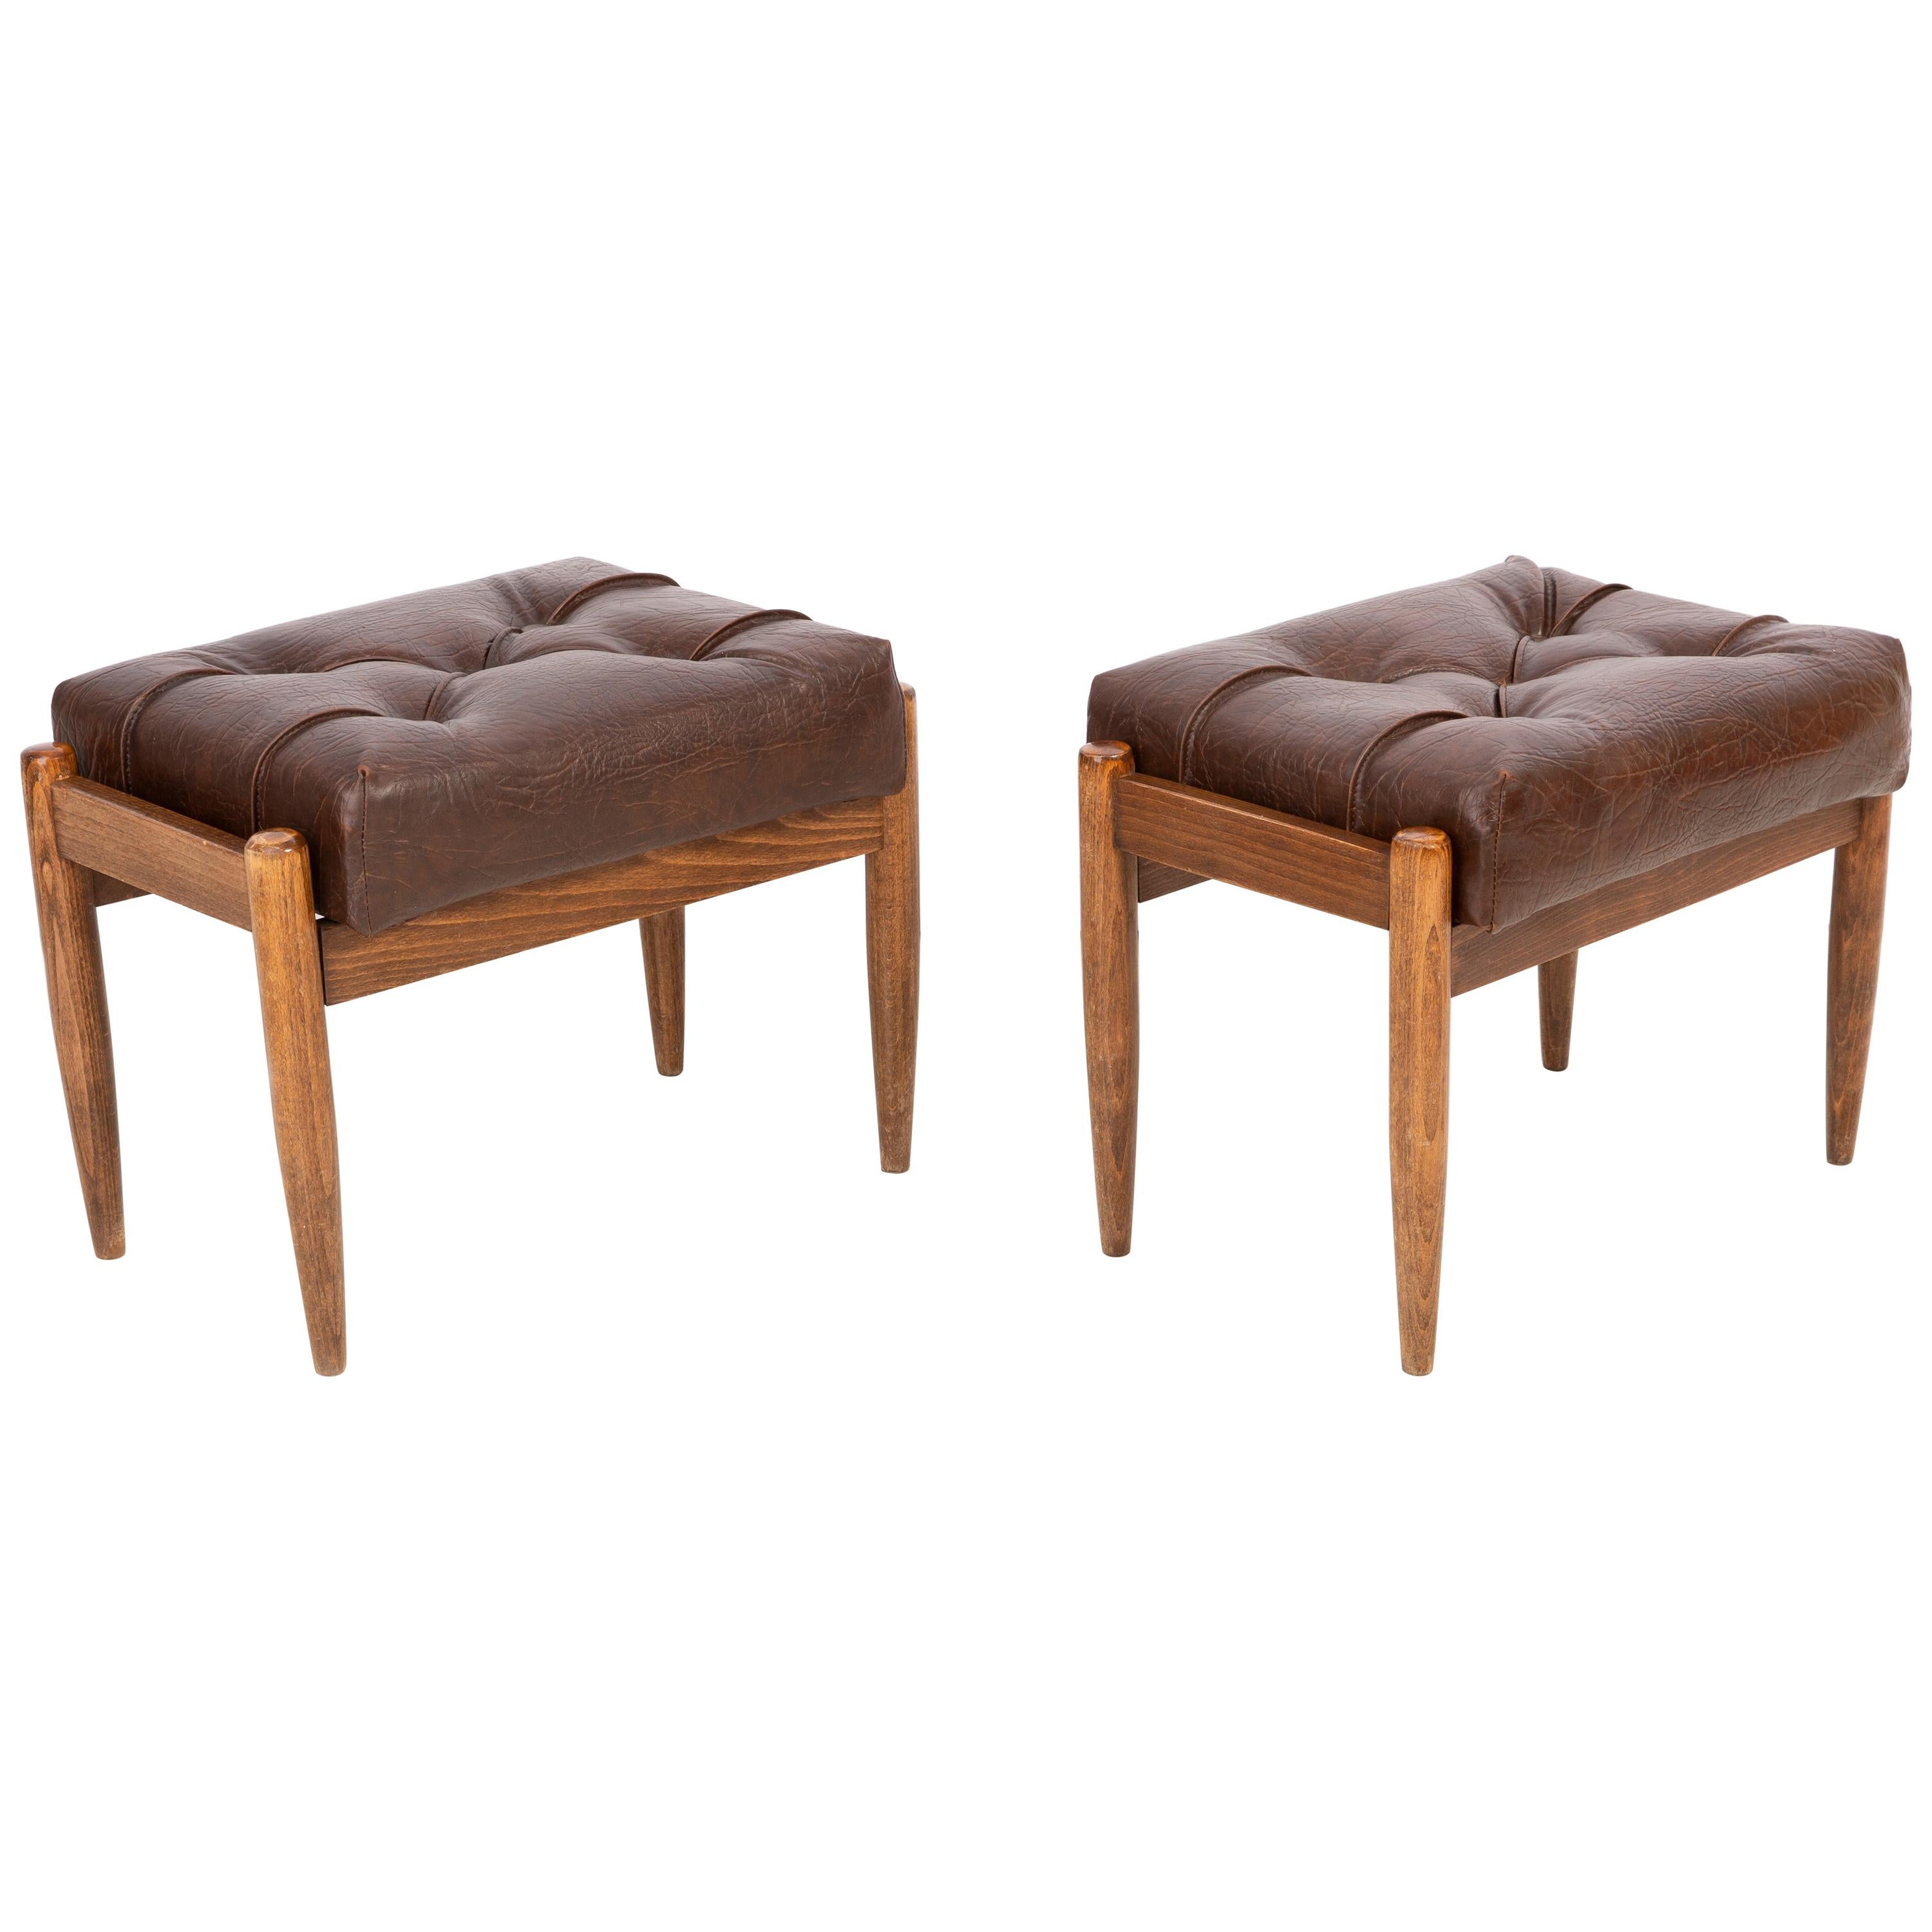 Set of Two Faux Leather Brown Vintage Stools, Edmund Homa, 1960s